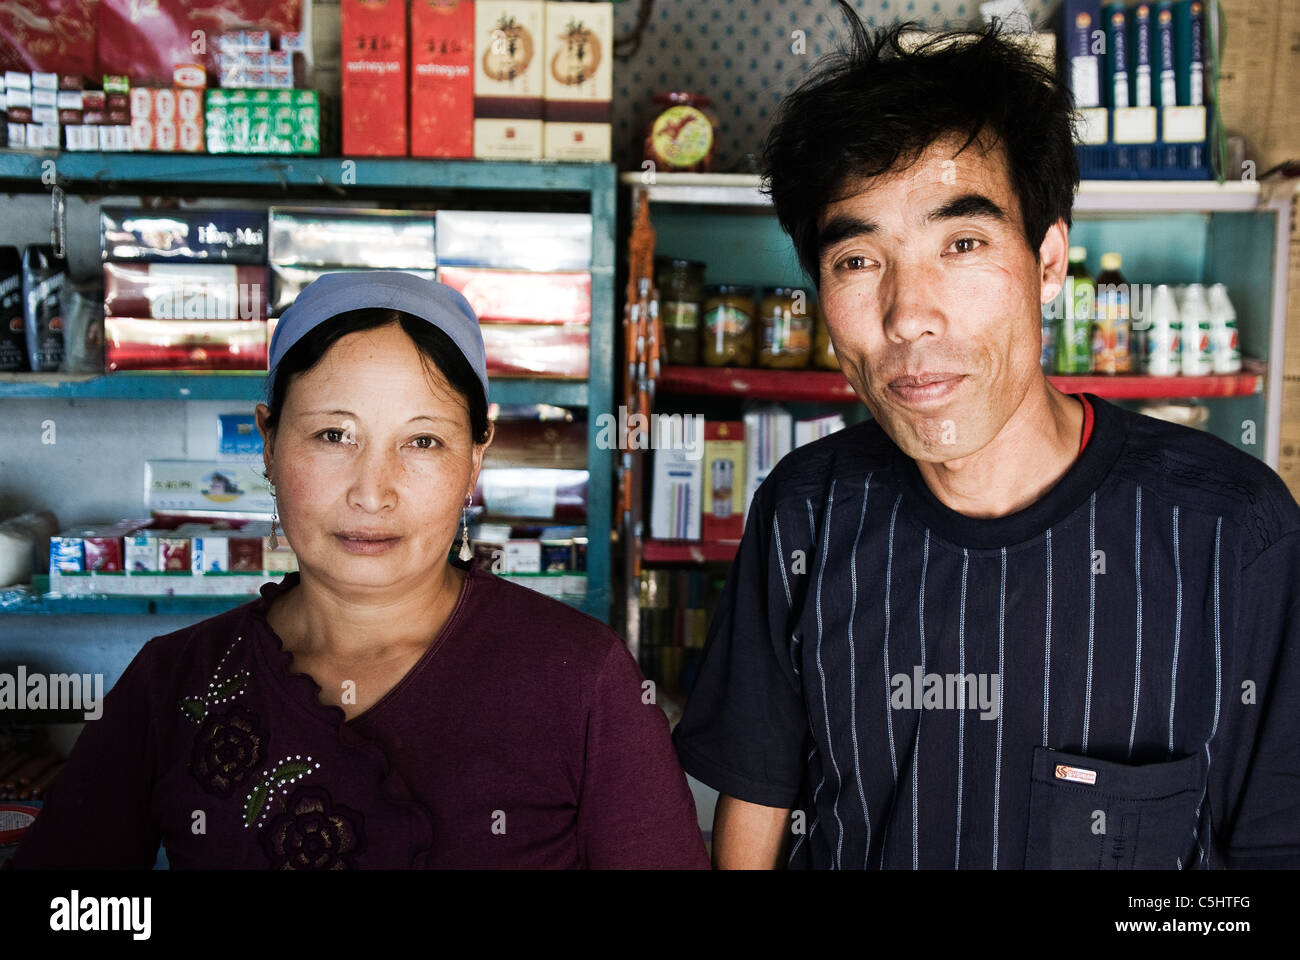 peasant couple in their convenience store in a village in ningxia, china - Stock Image